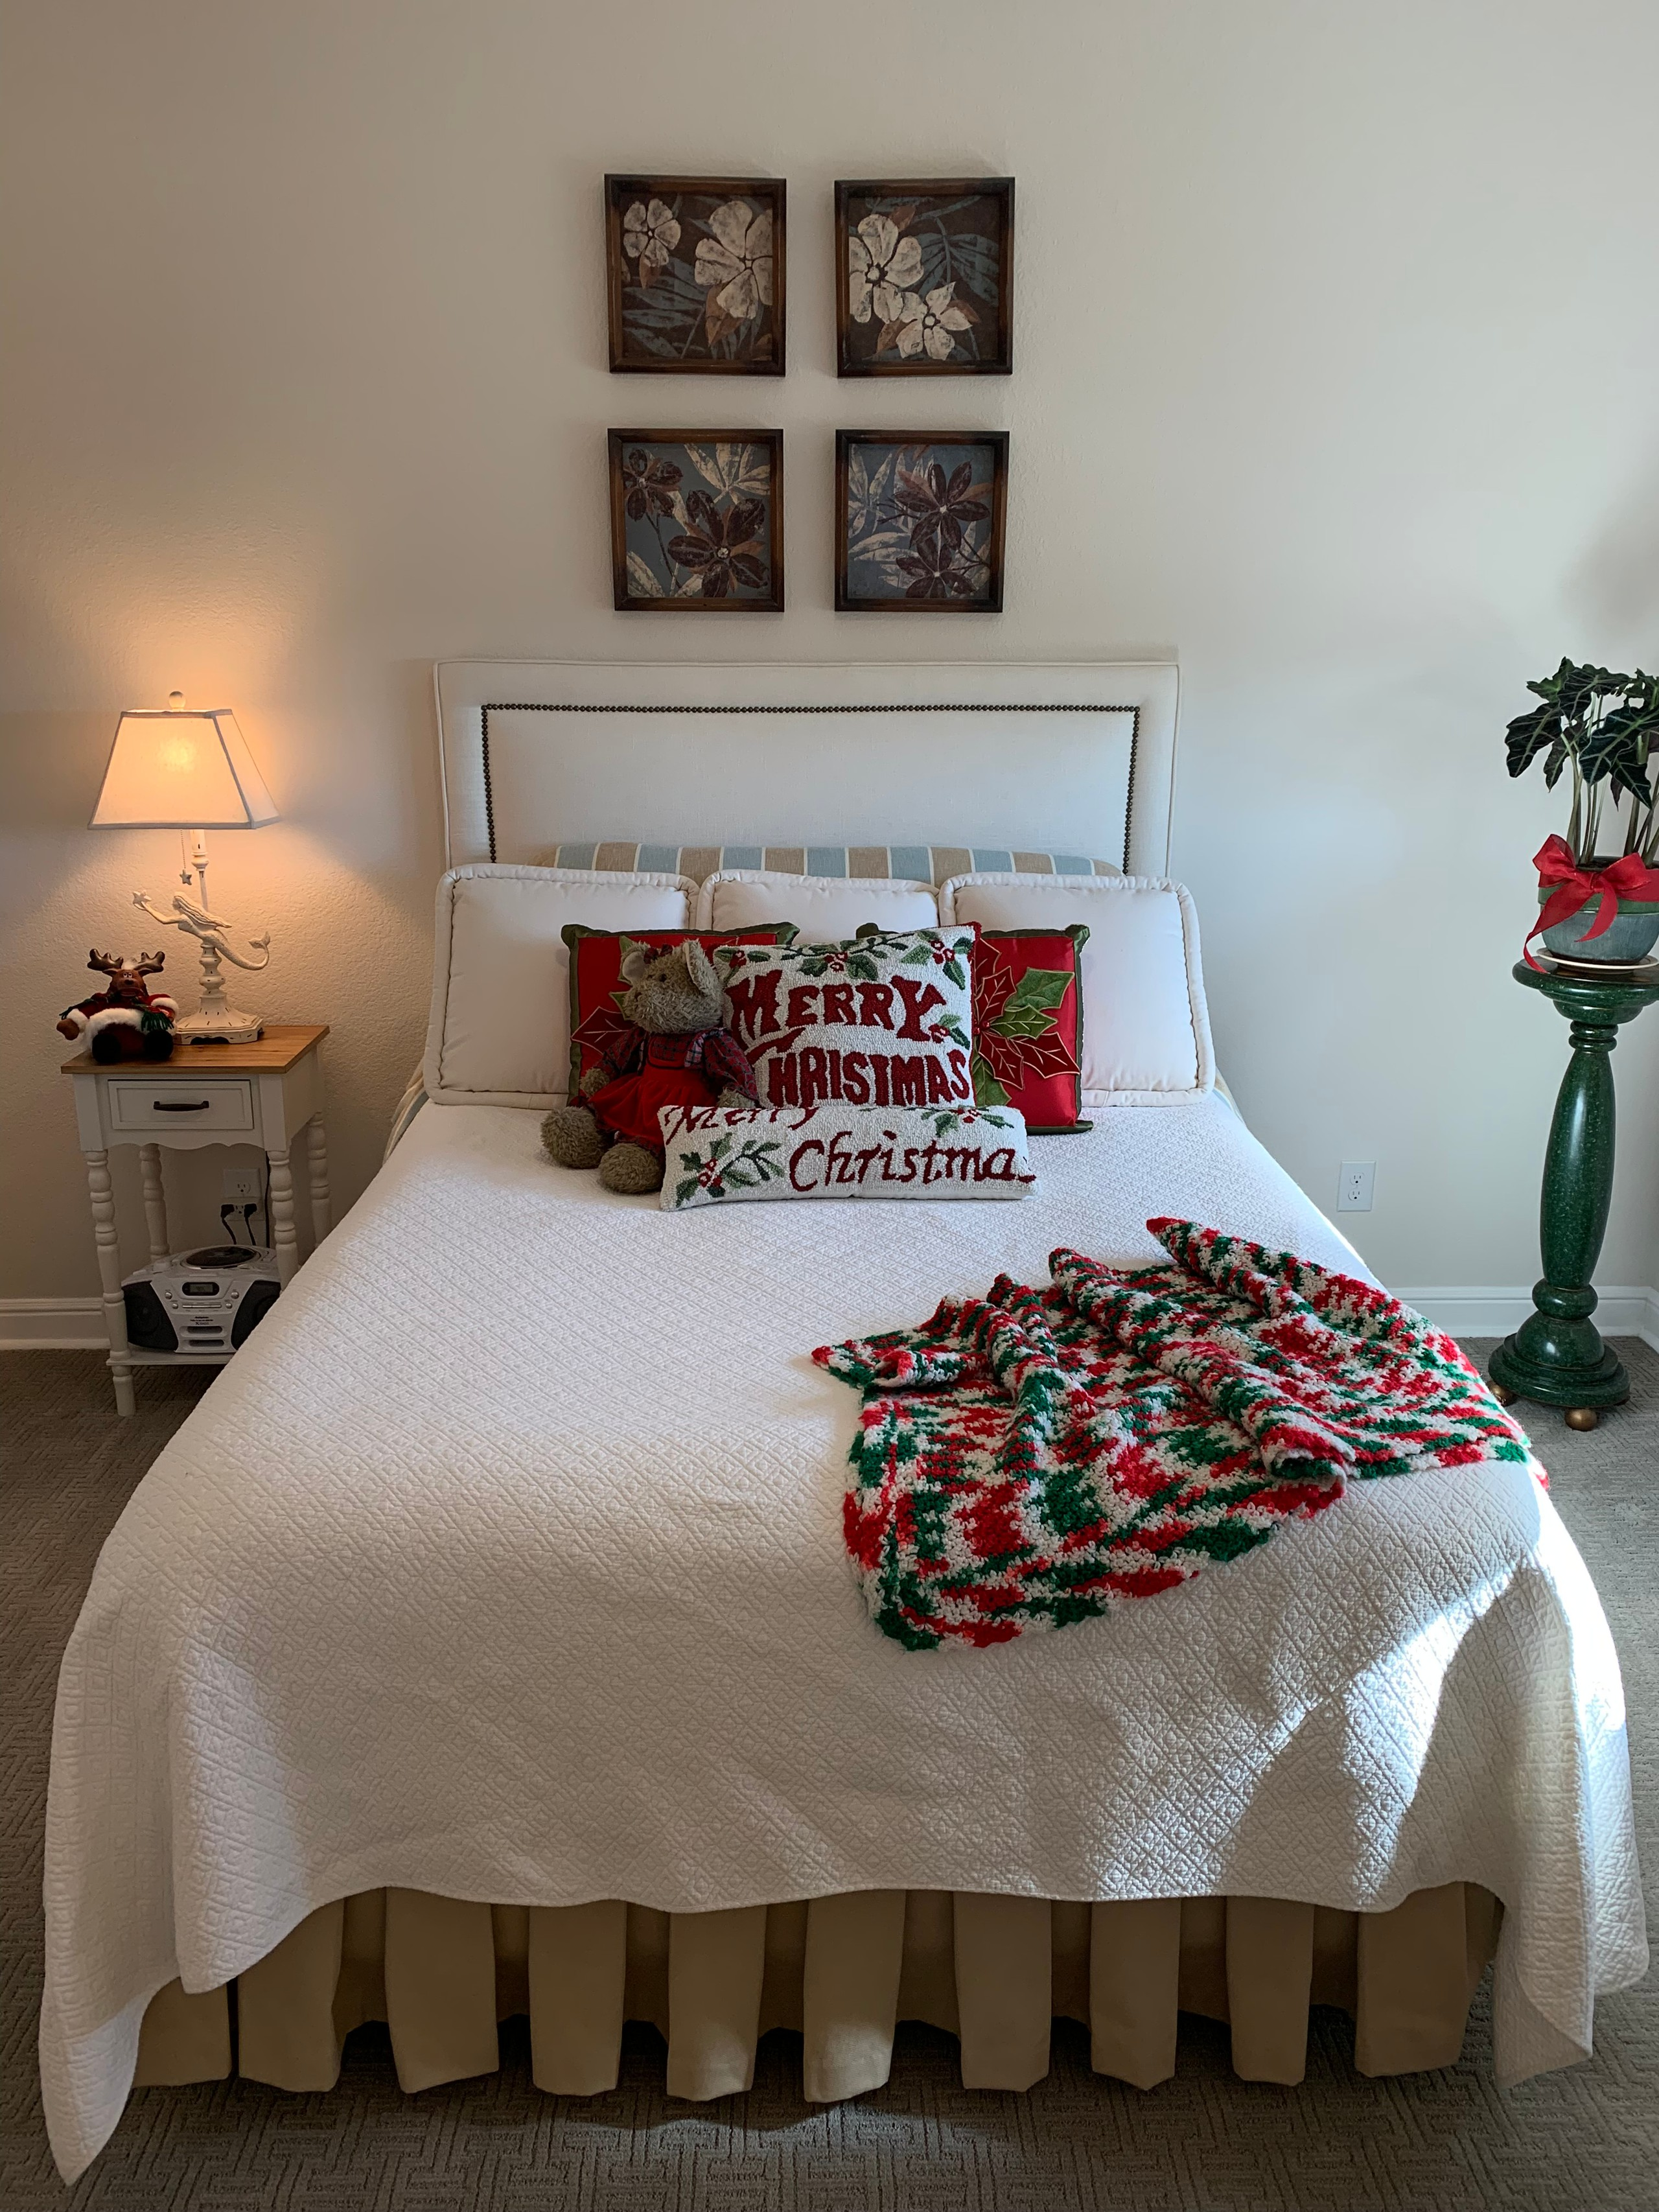 Holiday Home Tour - Mansfield TX